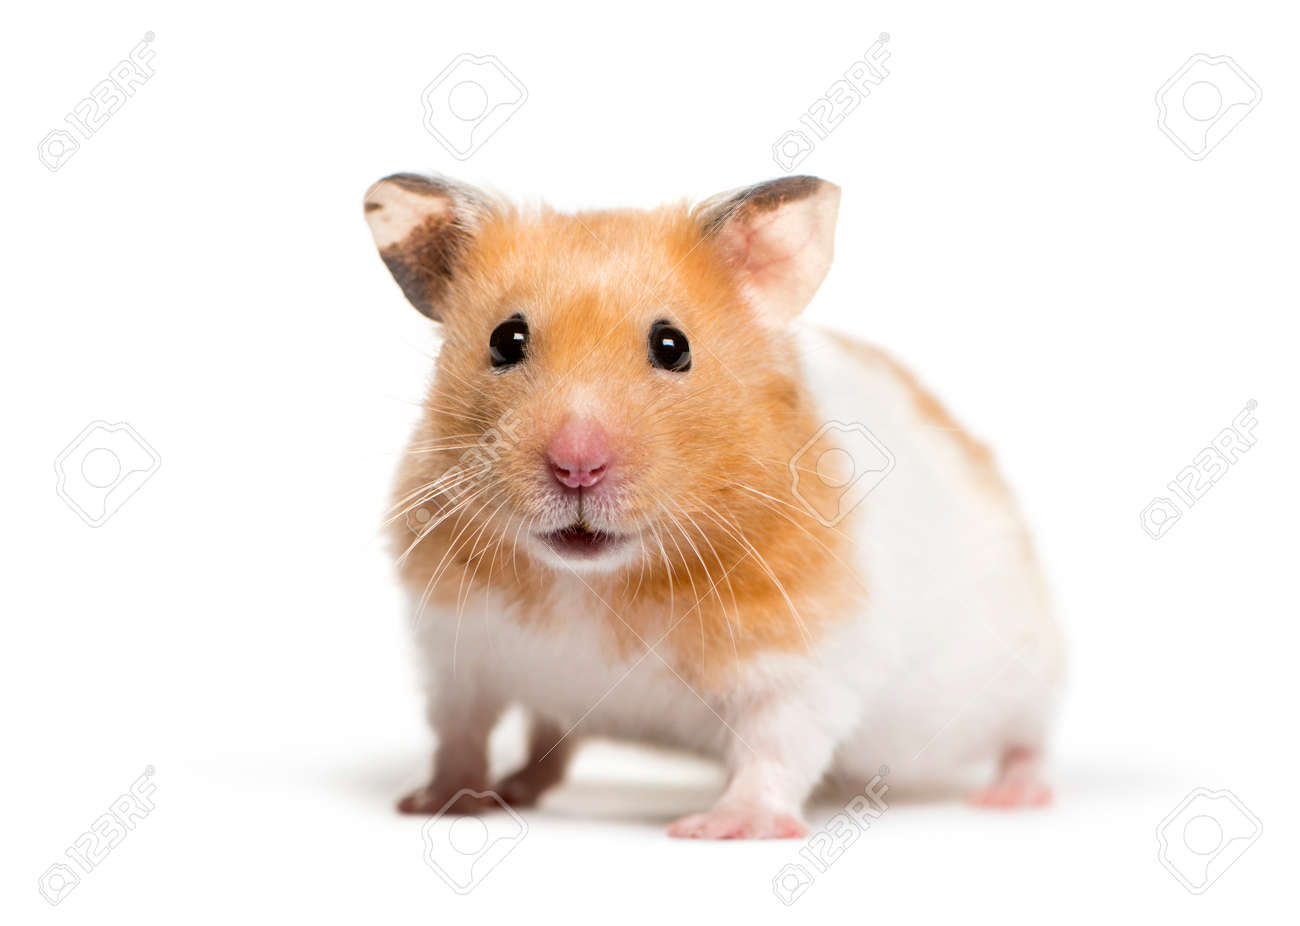 Golden Hamster in front of white background - 121567487